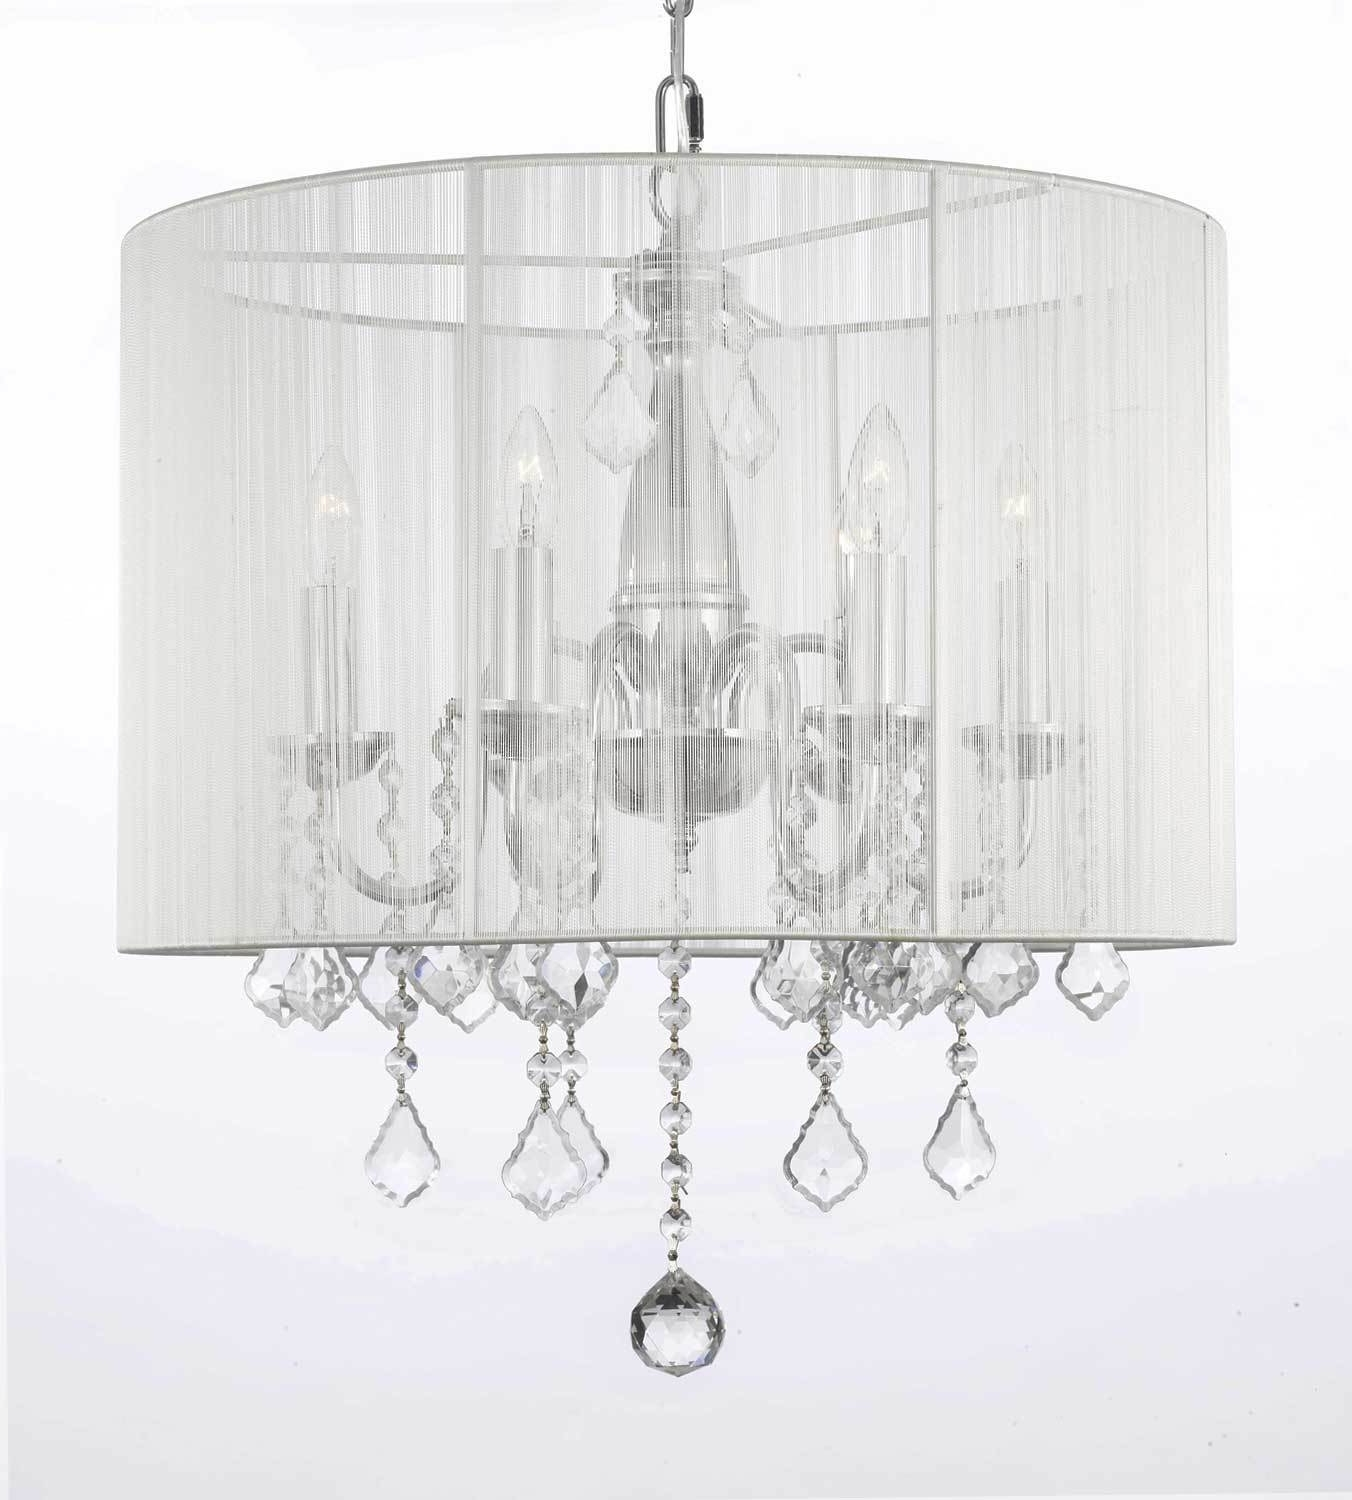 Best And Newest Attractive White Chandelier With Shades G7 11266 Gallery Chandeliers Throughout Crystal Chandeliers With Shades (View 4 of 20)